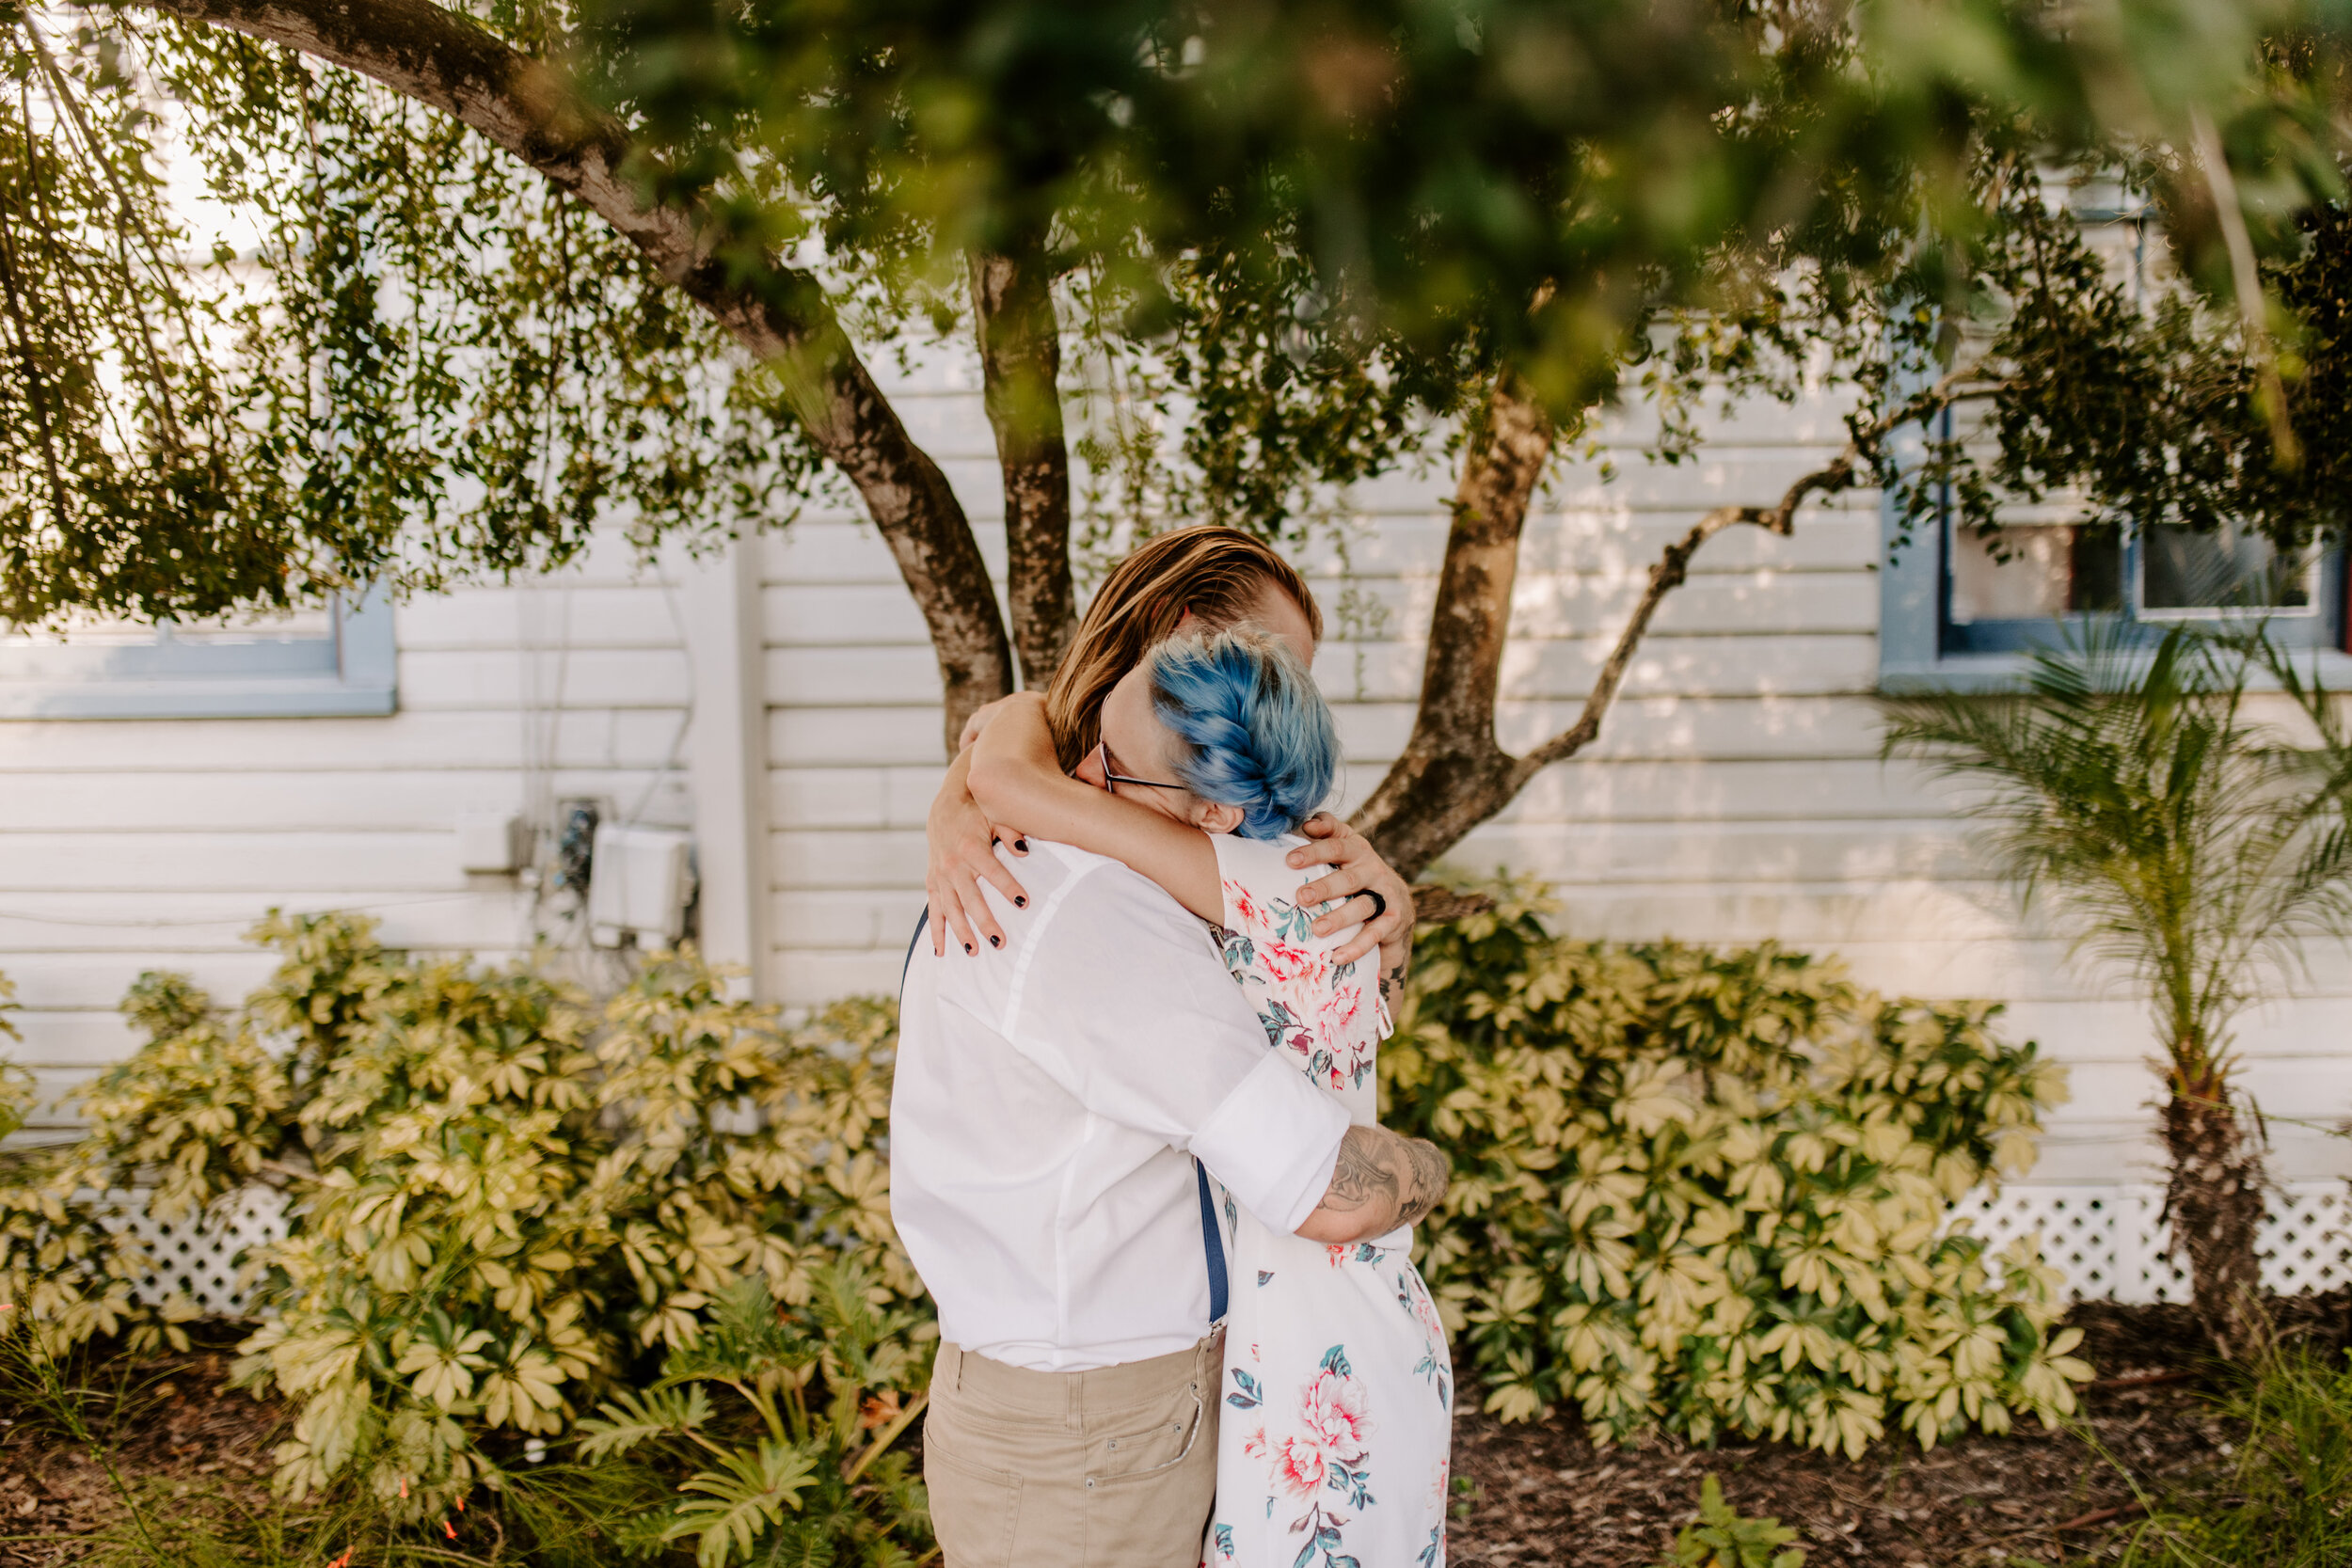 Ashalei_+_Clay_-_Native_Expressions_-_Downtown_St_Augustine_-_Engagement_Session-91.jpg